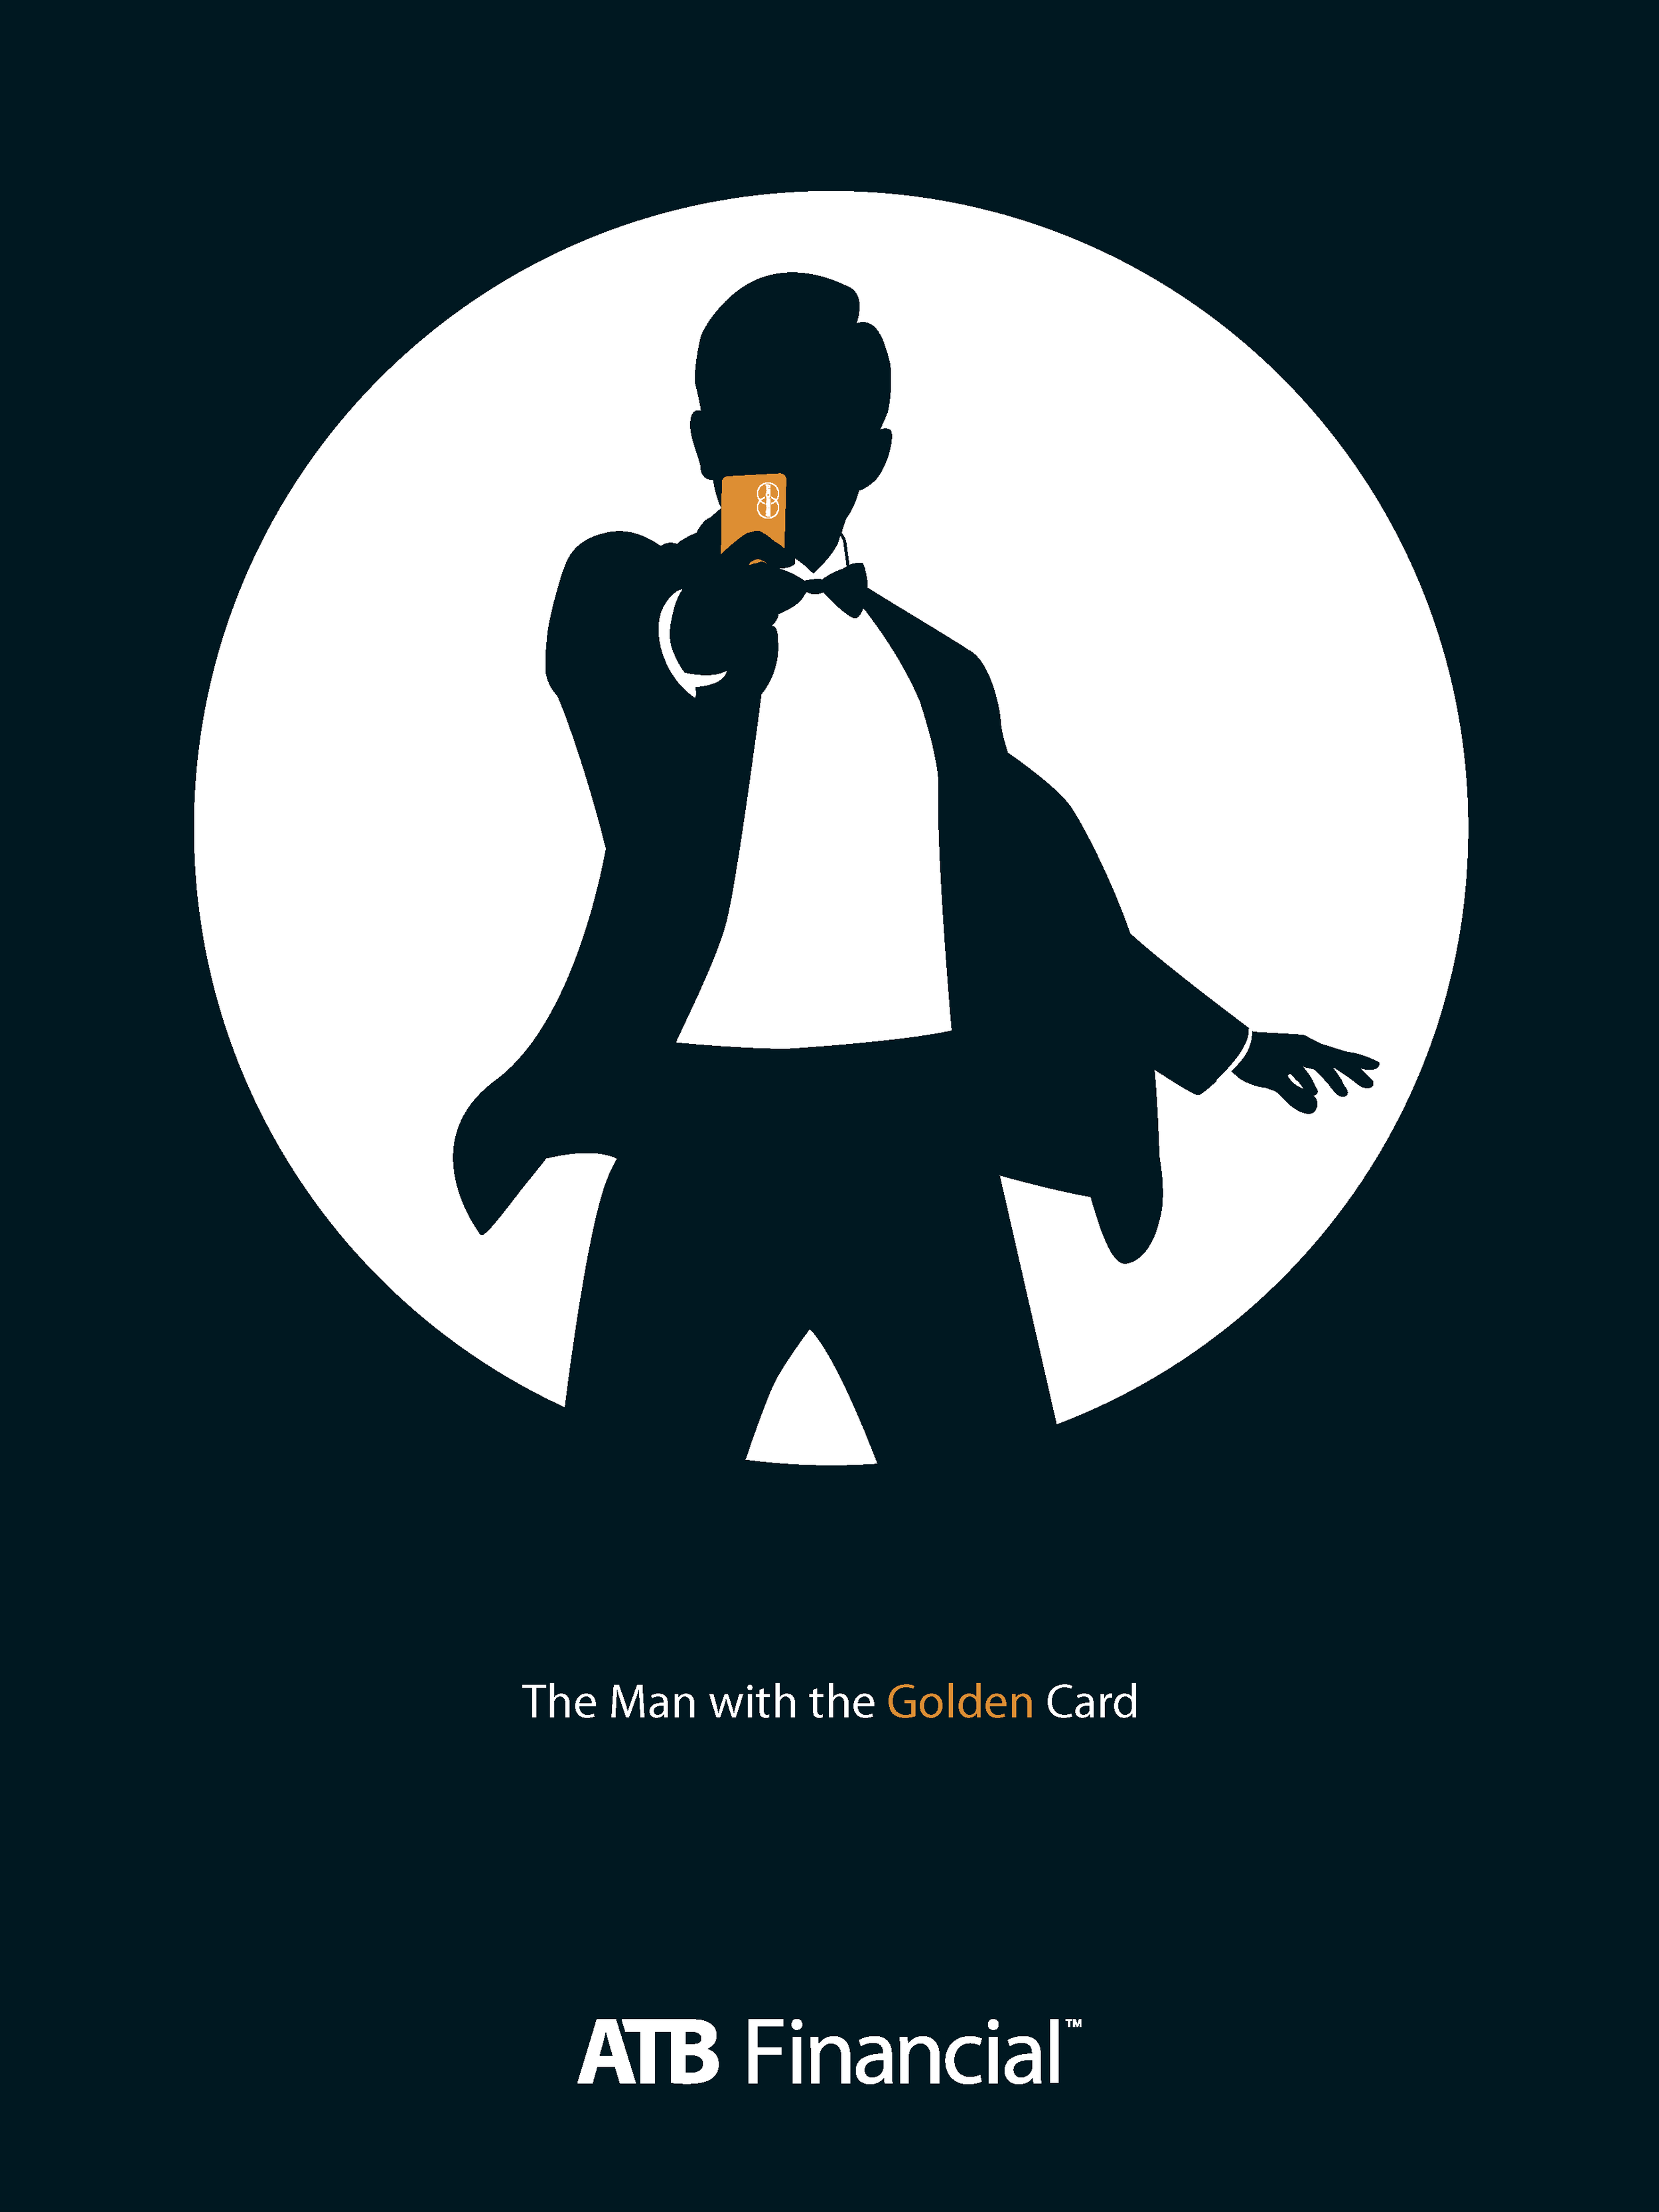 The man with the golden card